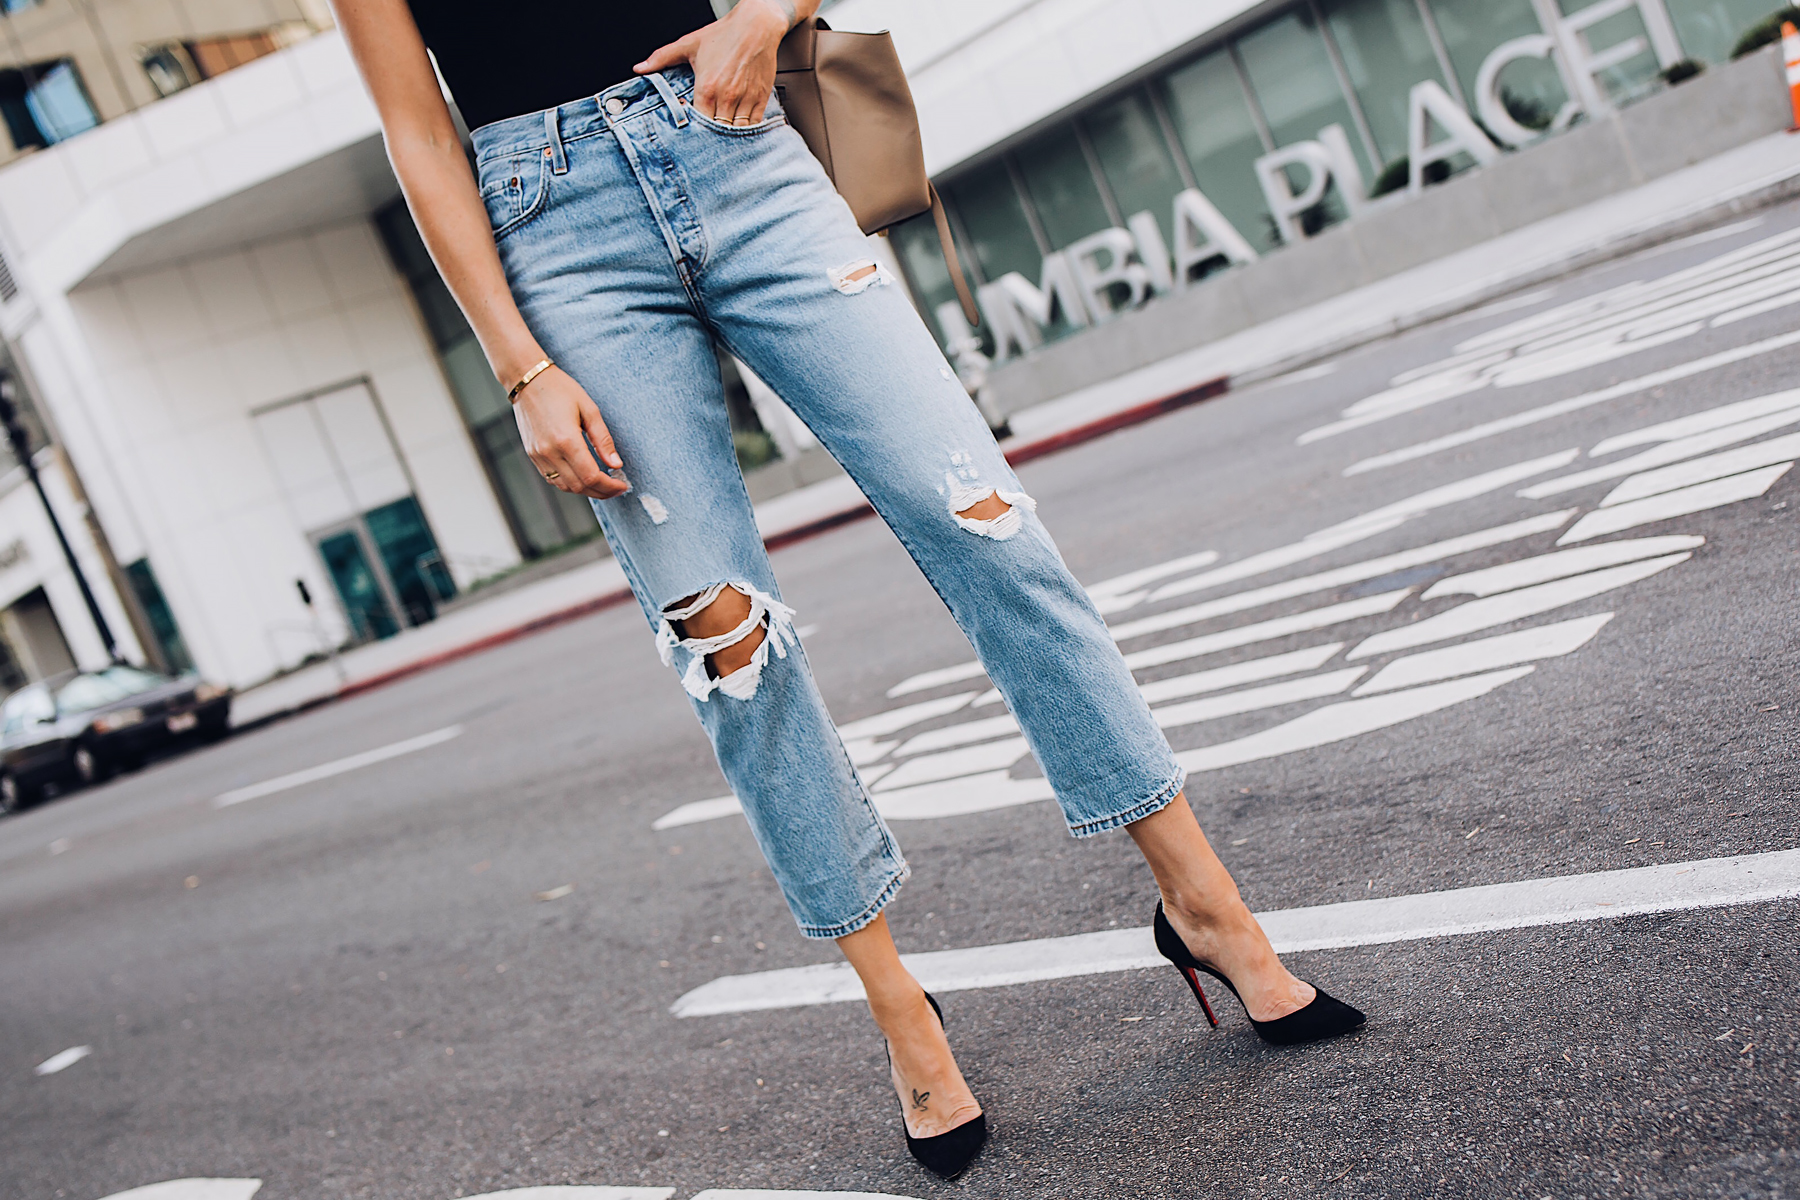 Woman Wearing Levis Wedgie Straight Leg Ripped Jeans Black Pumps Fashion Jackson San Diego Fashion Blogger Street Style